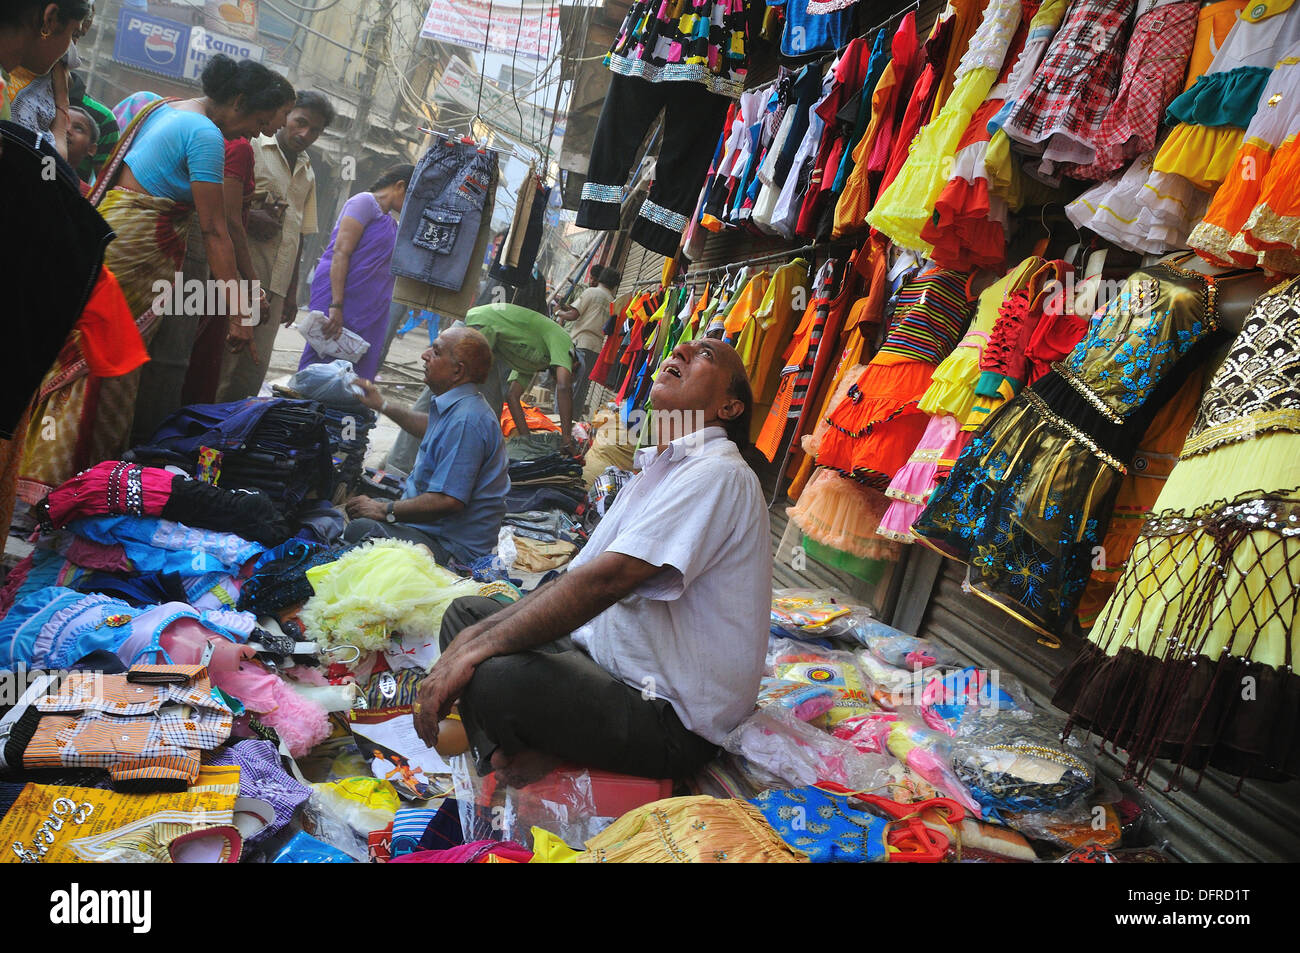 Selling clothe on the street, Delhi India - Stock Image